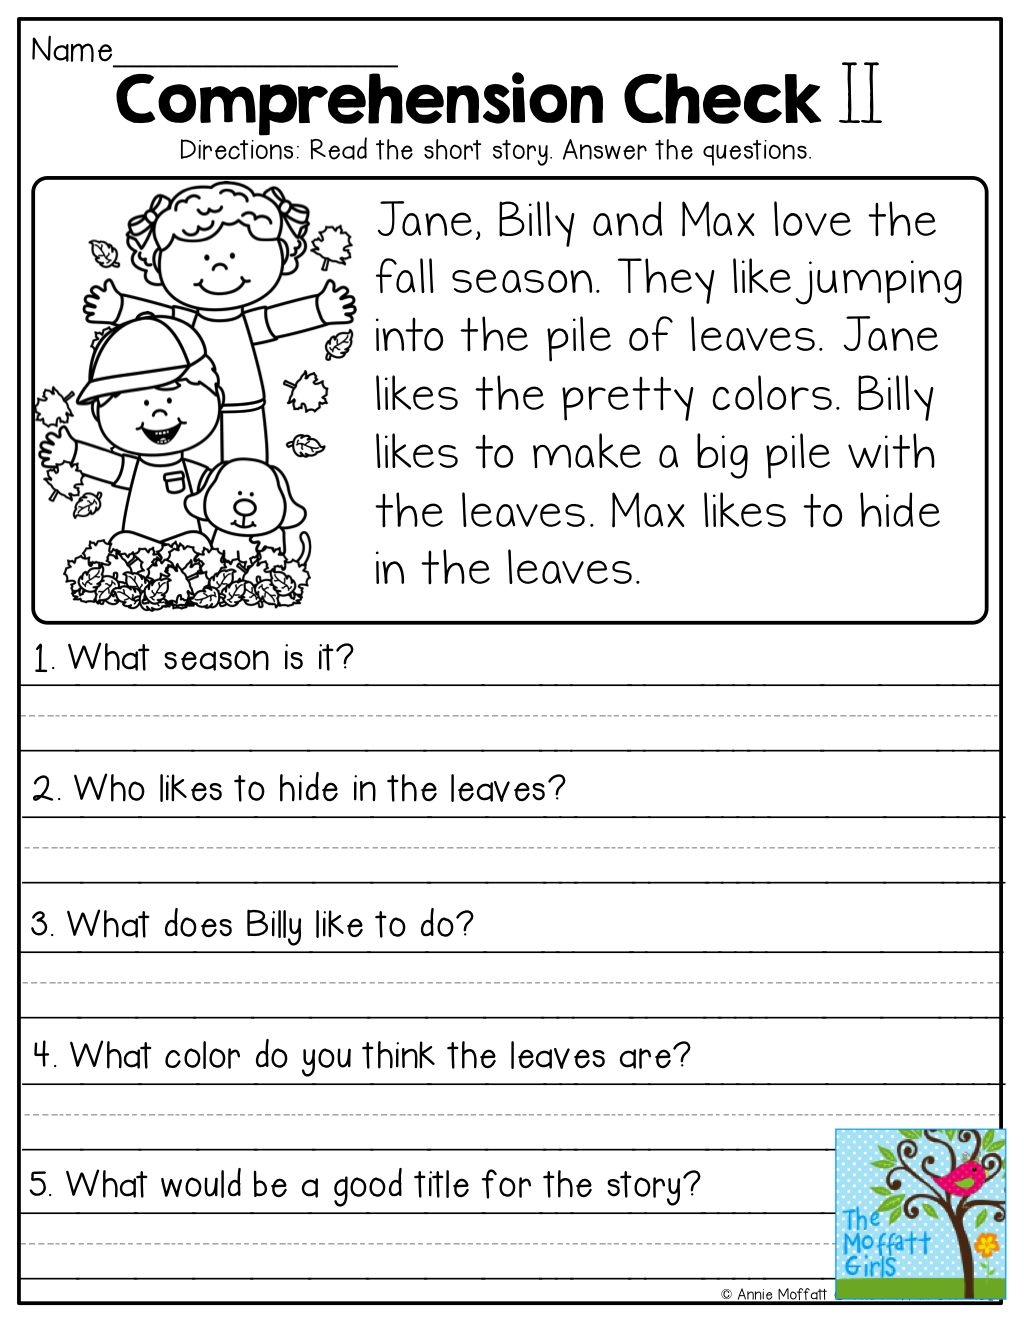 Comprehension Checks And So Many More Useful Printables! | Test Of | Printable Comprehension Worksheets For Grade 3